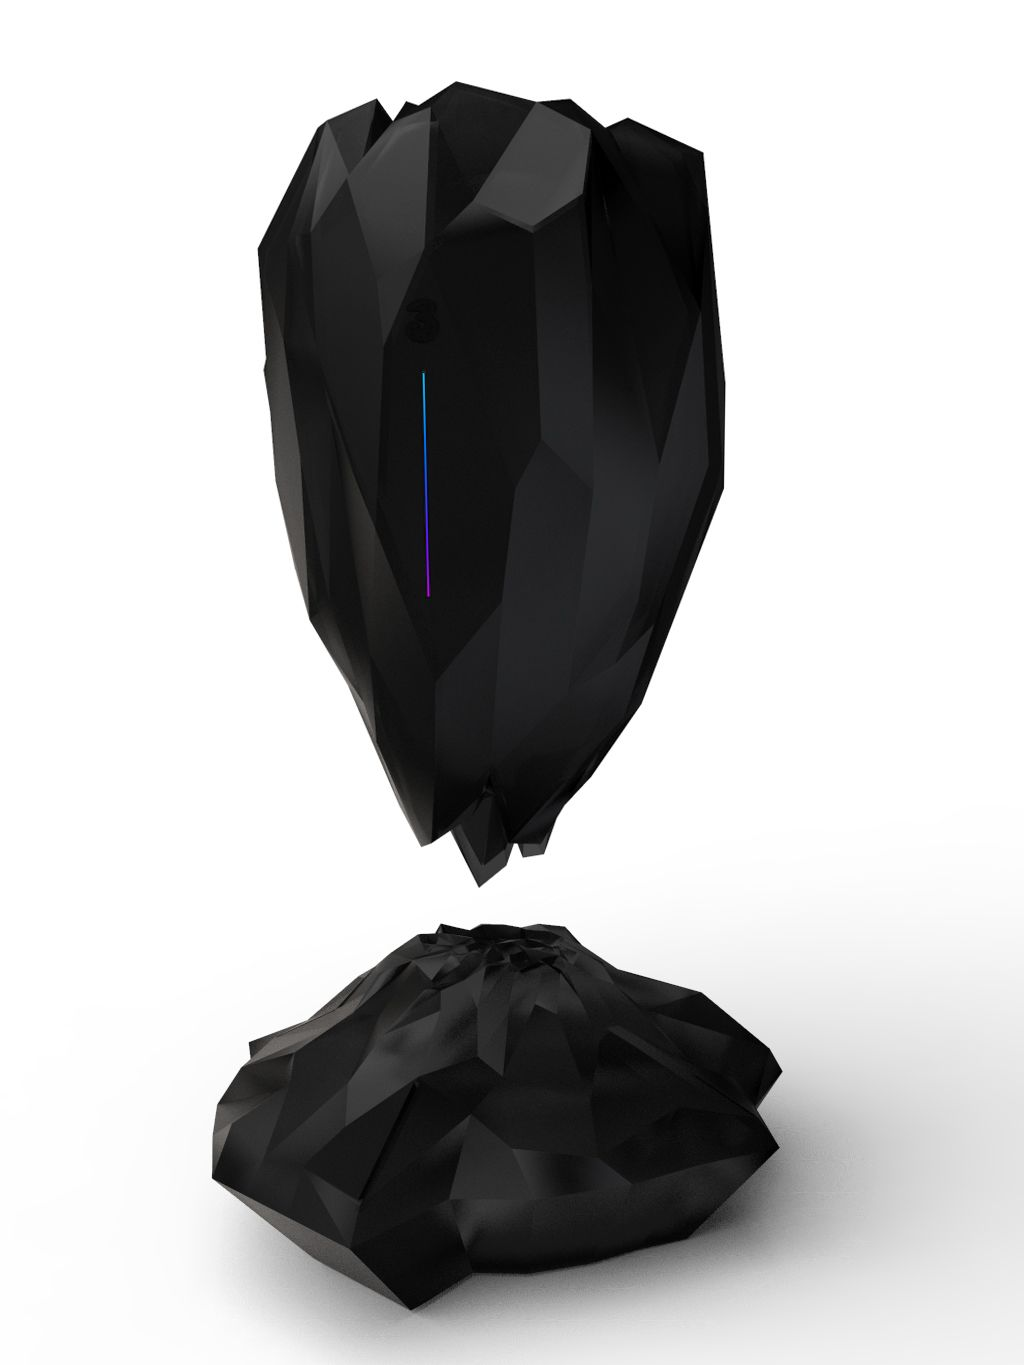 Digital design of black object reminiscent of a crystal